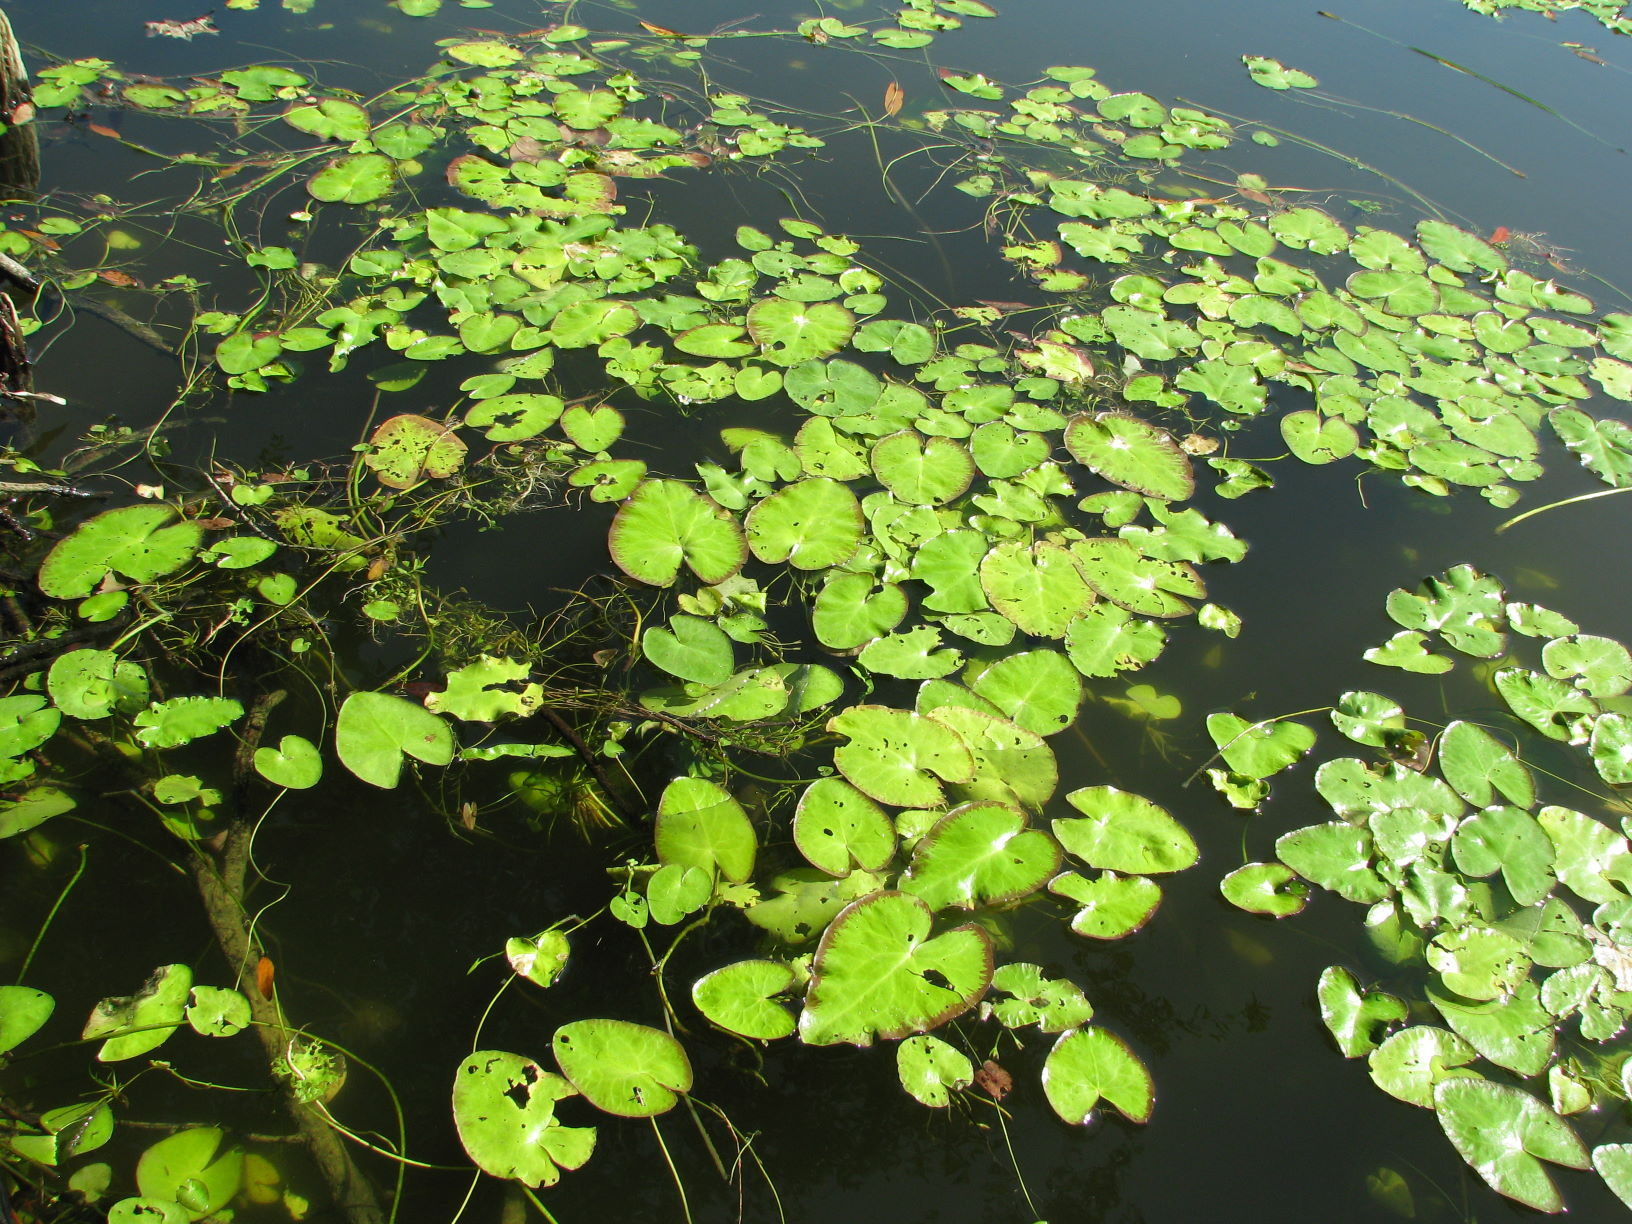 Floating aquatic plants college of agriculture forestry for Floating flowers in water